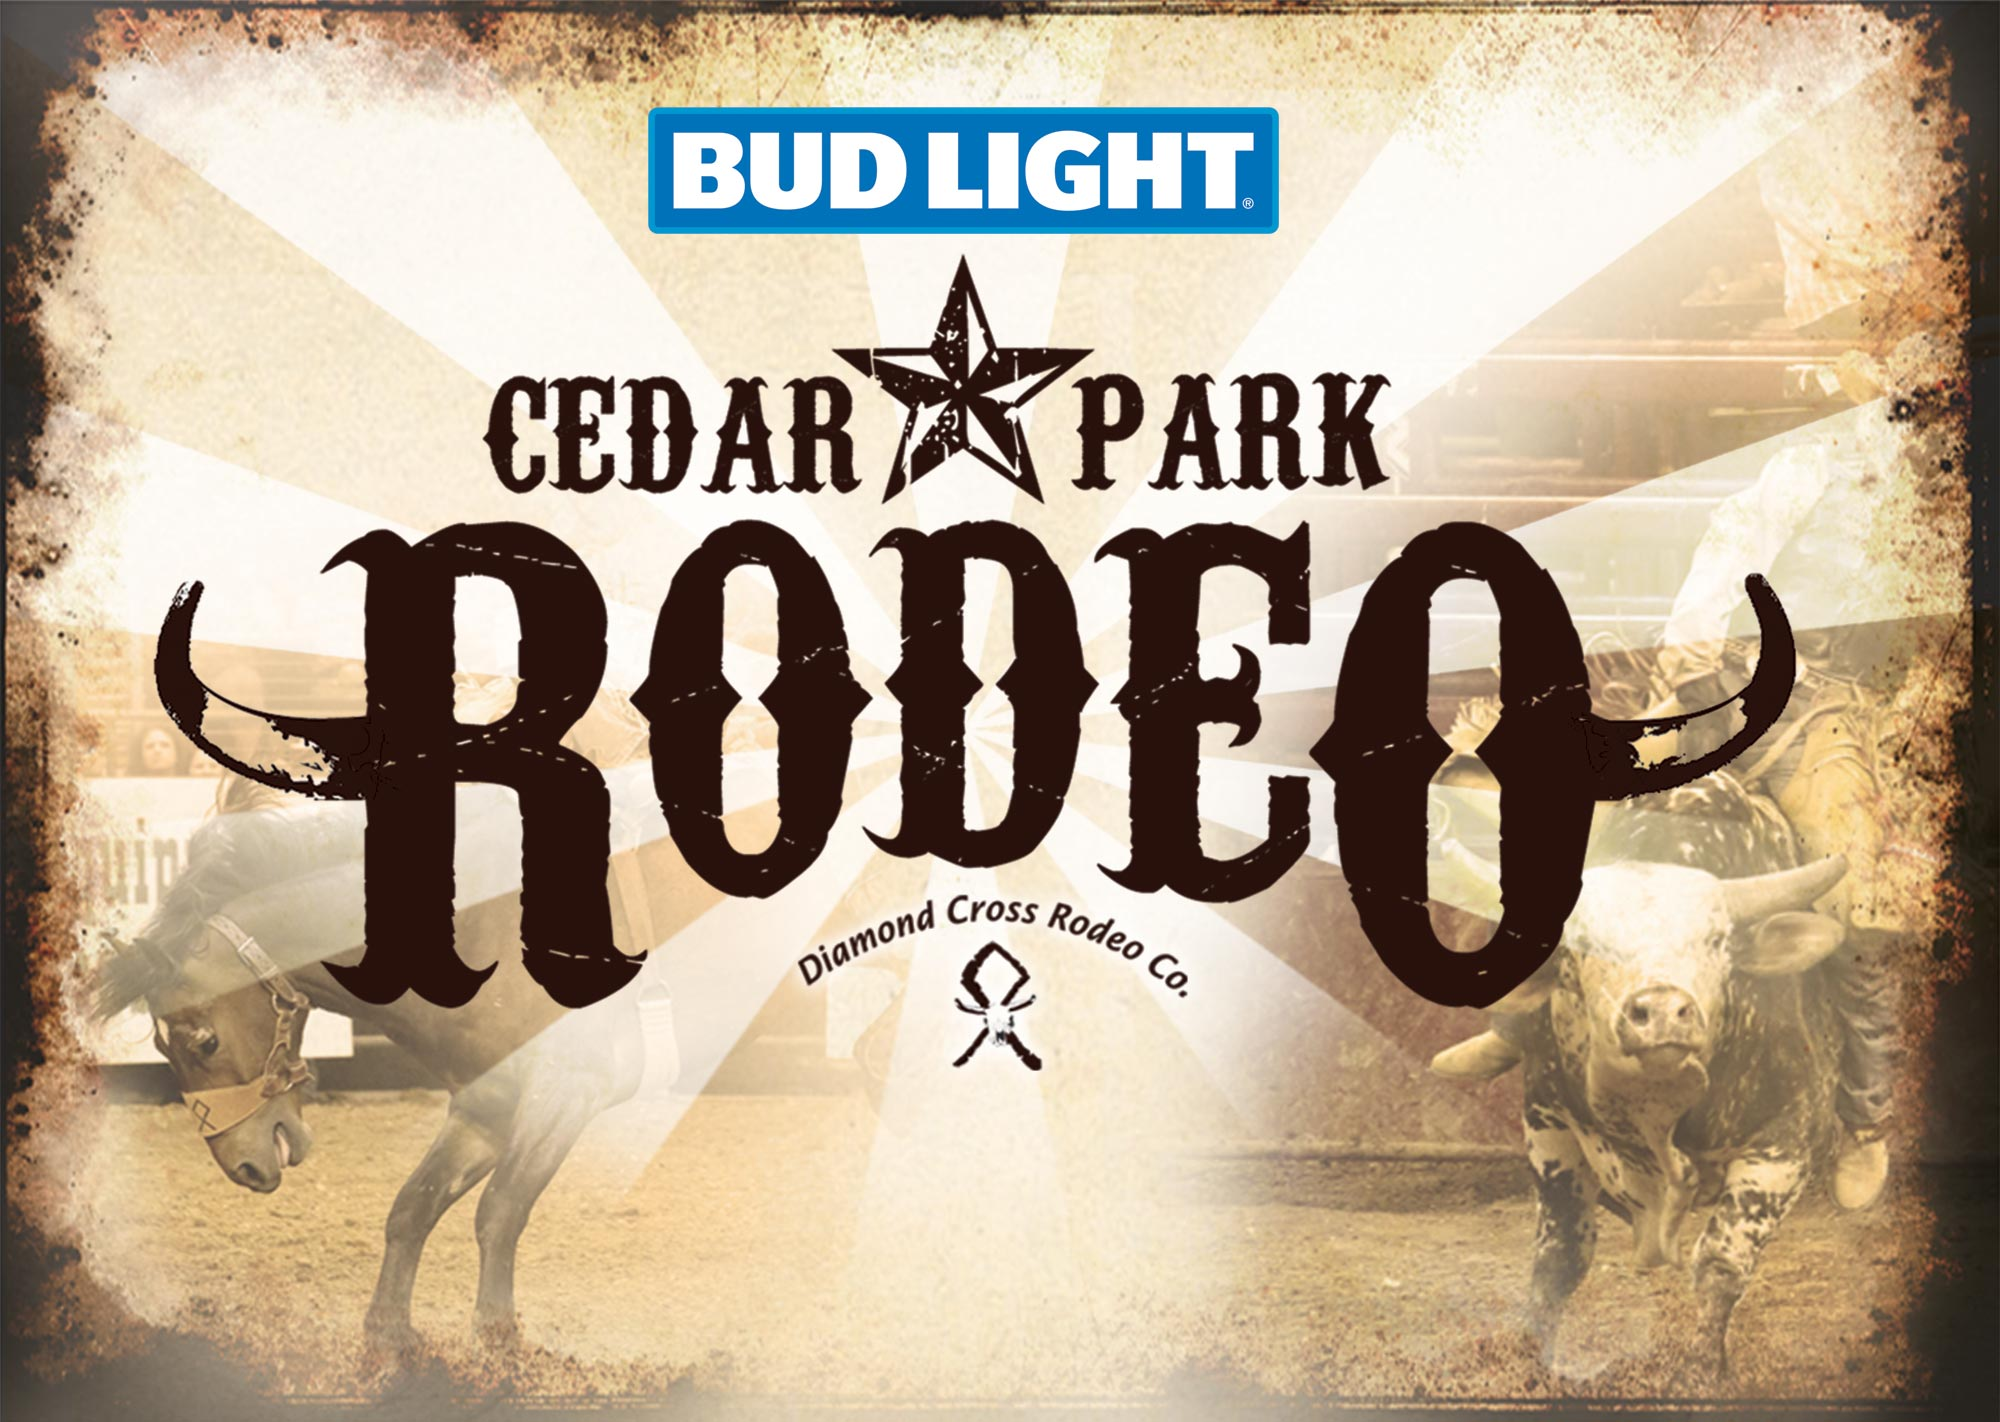 Bud-Light-Cedar-Park-Rodeo-2019_2000x1422.jpg